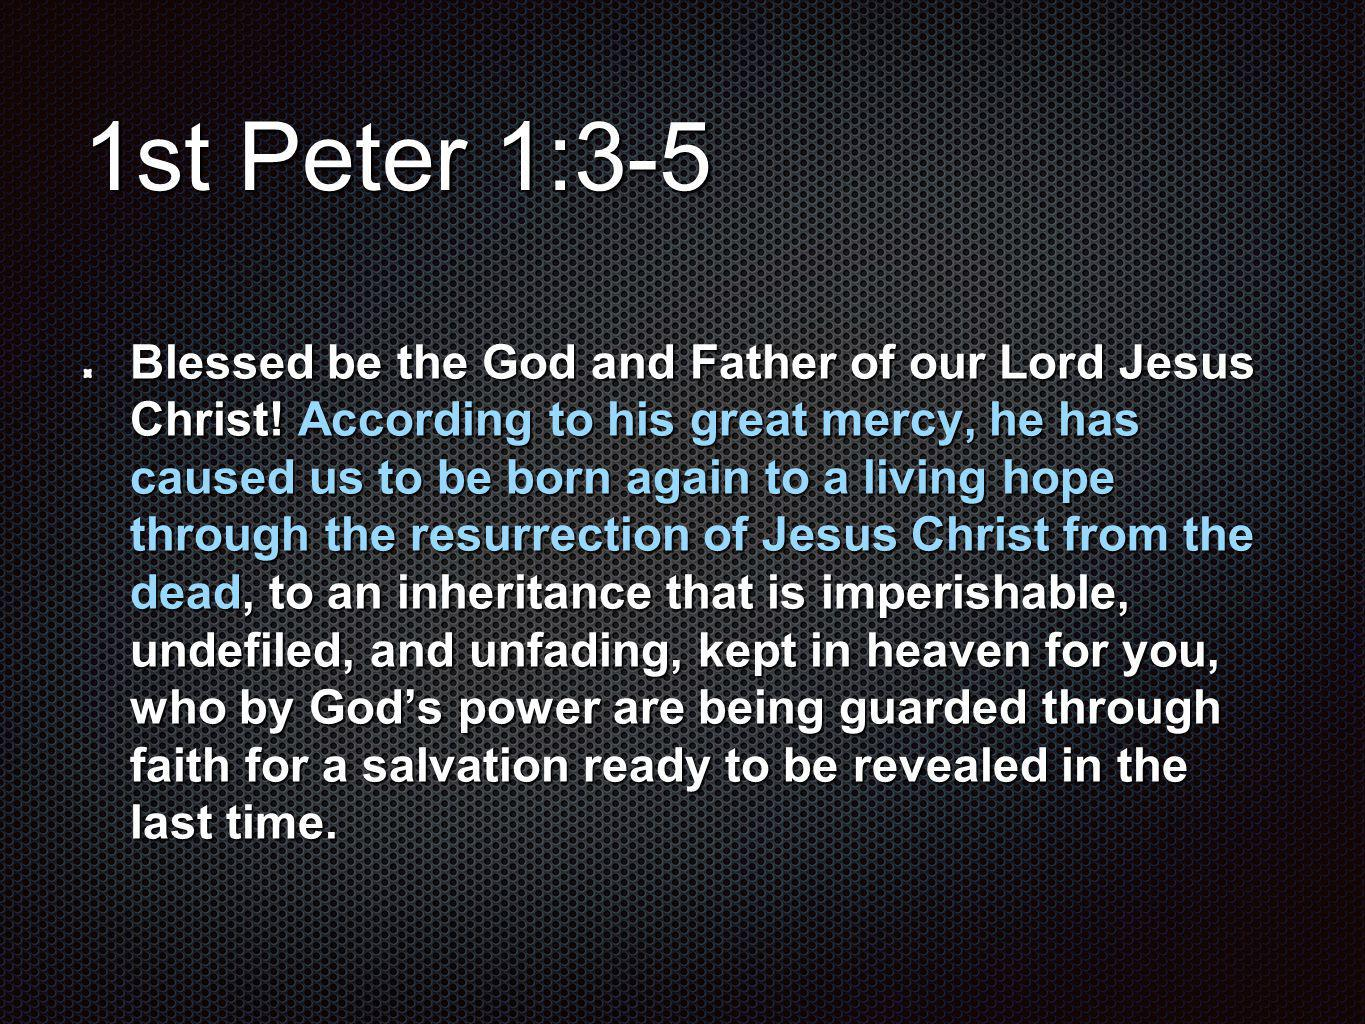 1st Peter 1:3-5 Blessed be the God and Father of our Lord Jesus Christ.